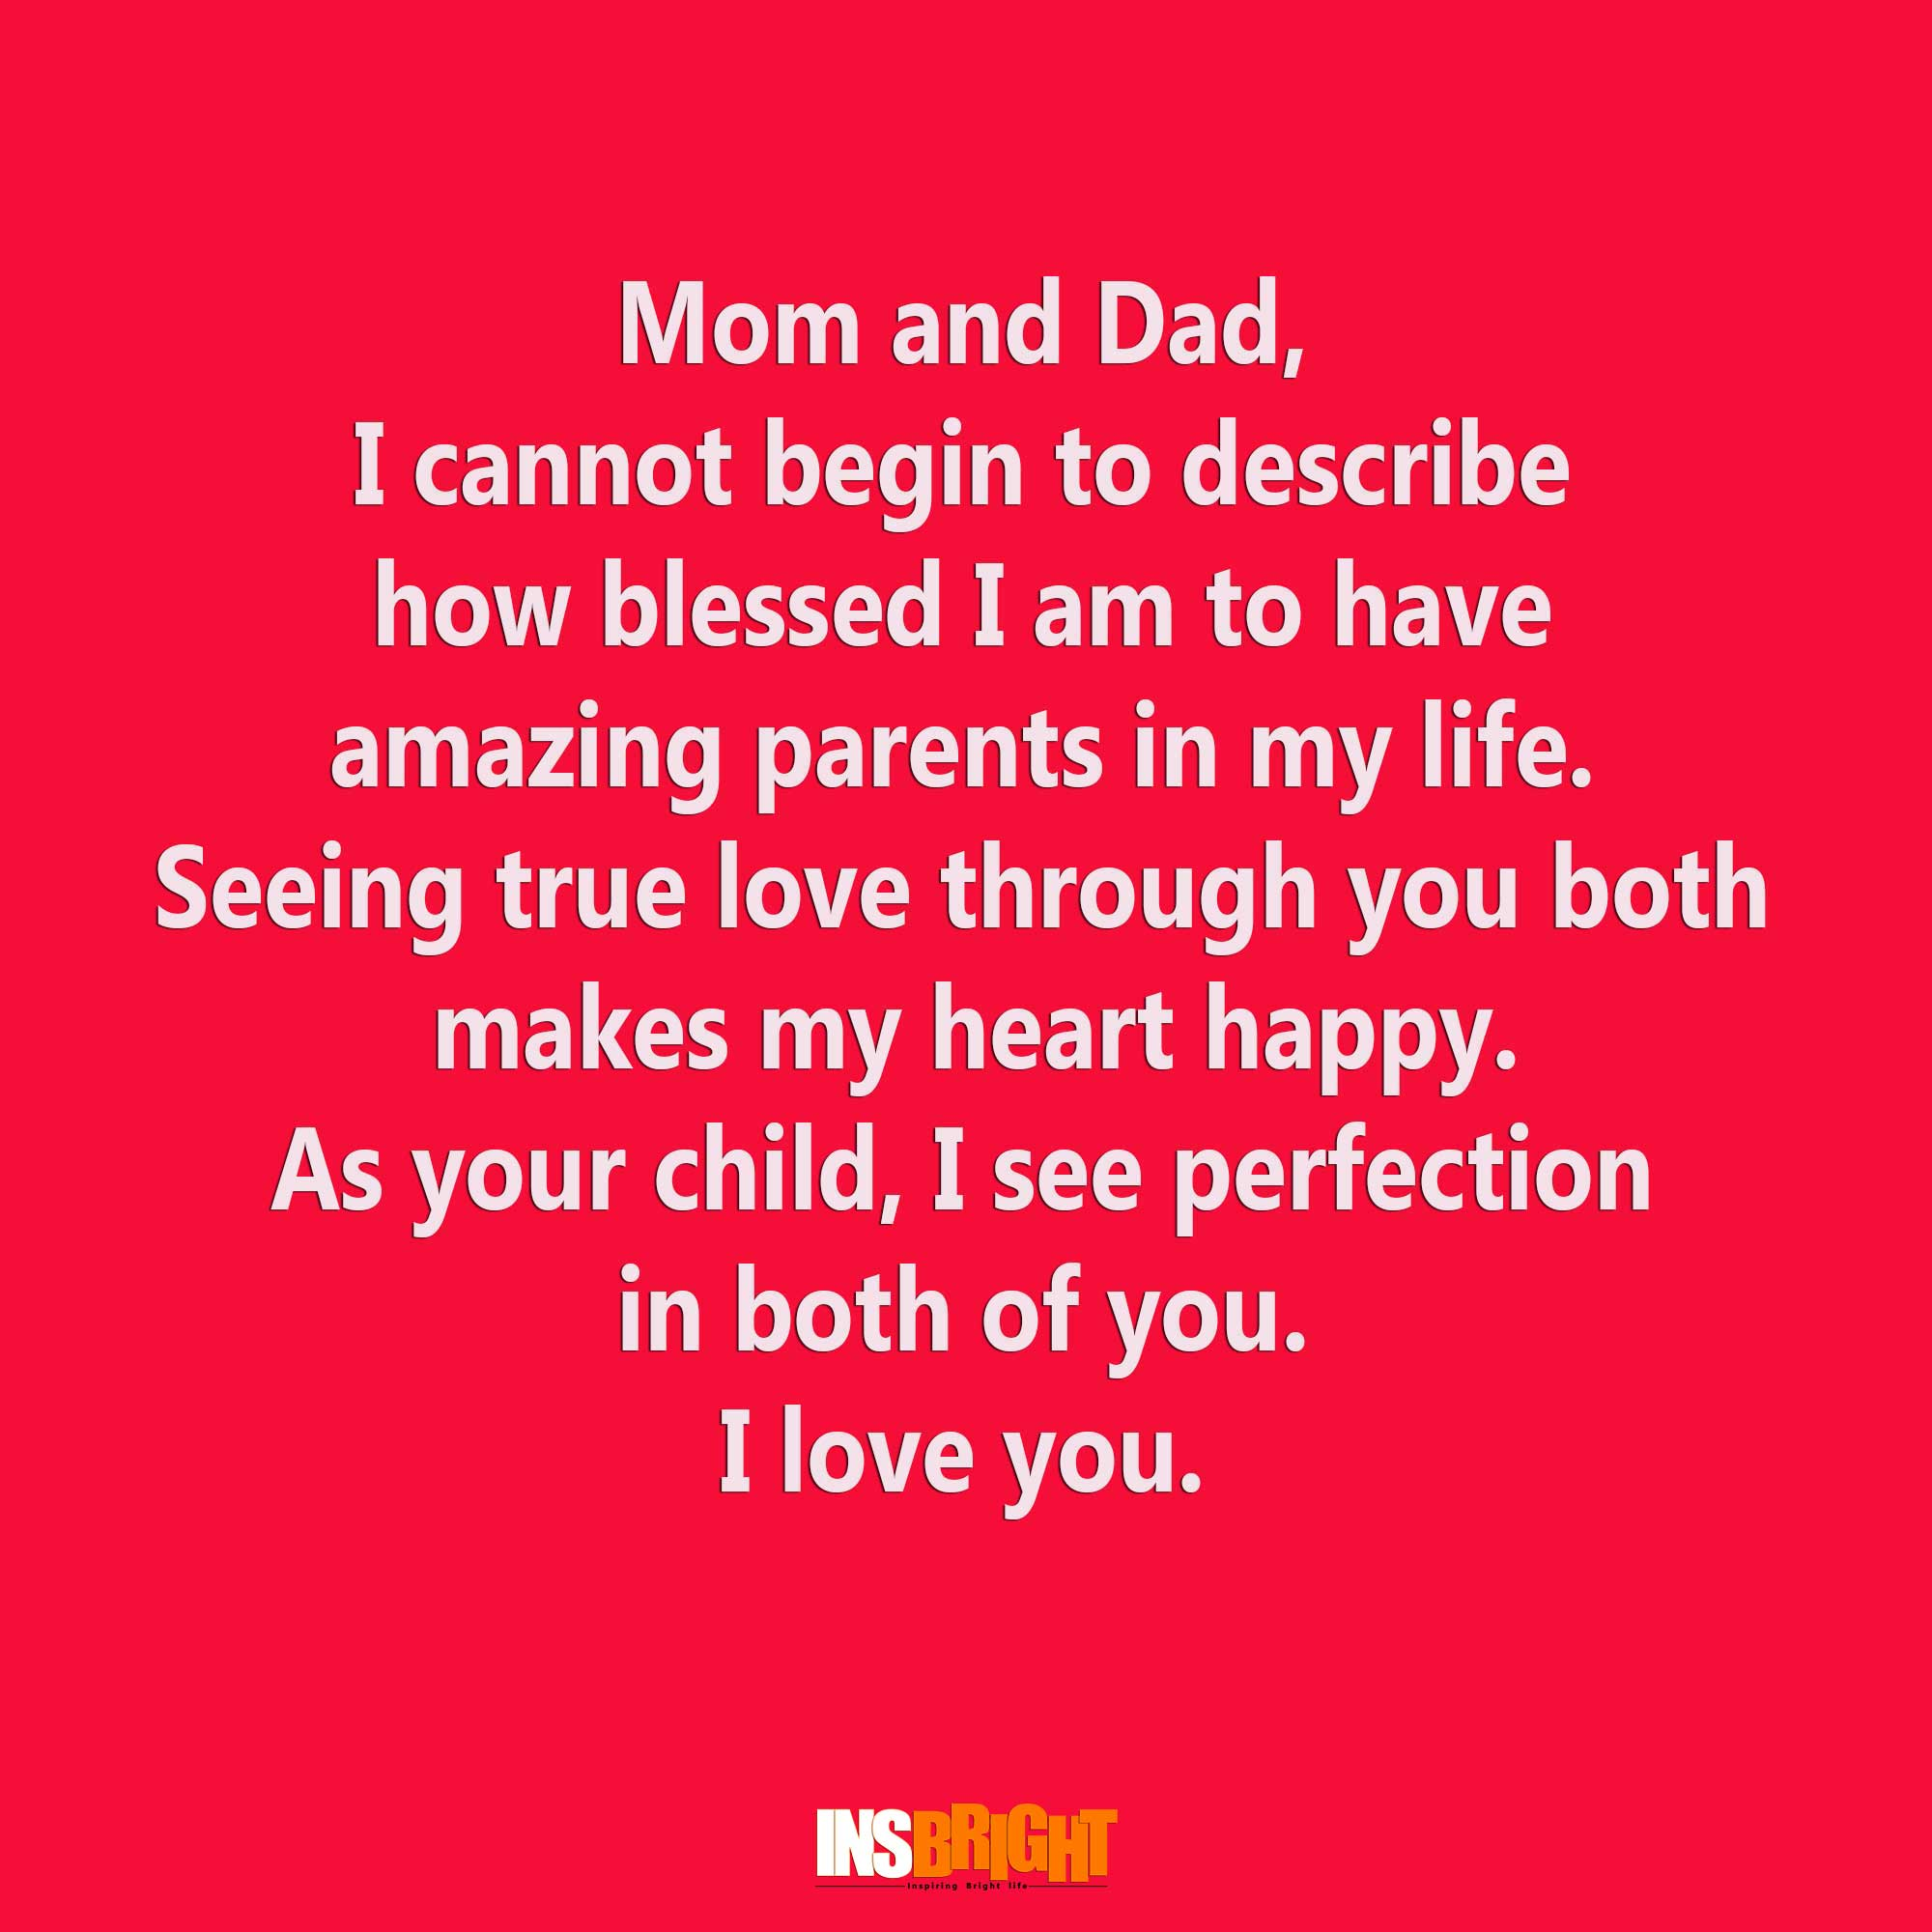 Quotes On Love And Marriage Happy Marriage Anniversary Quotes With Images  Insbright